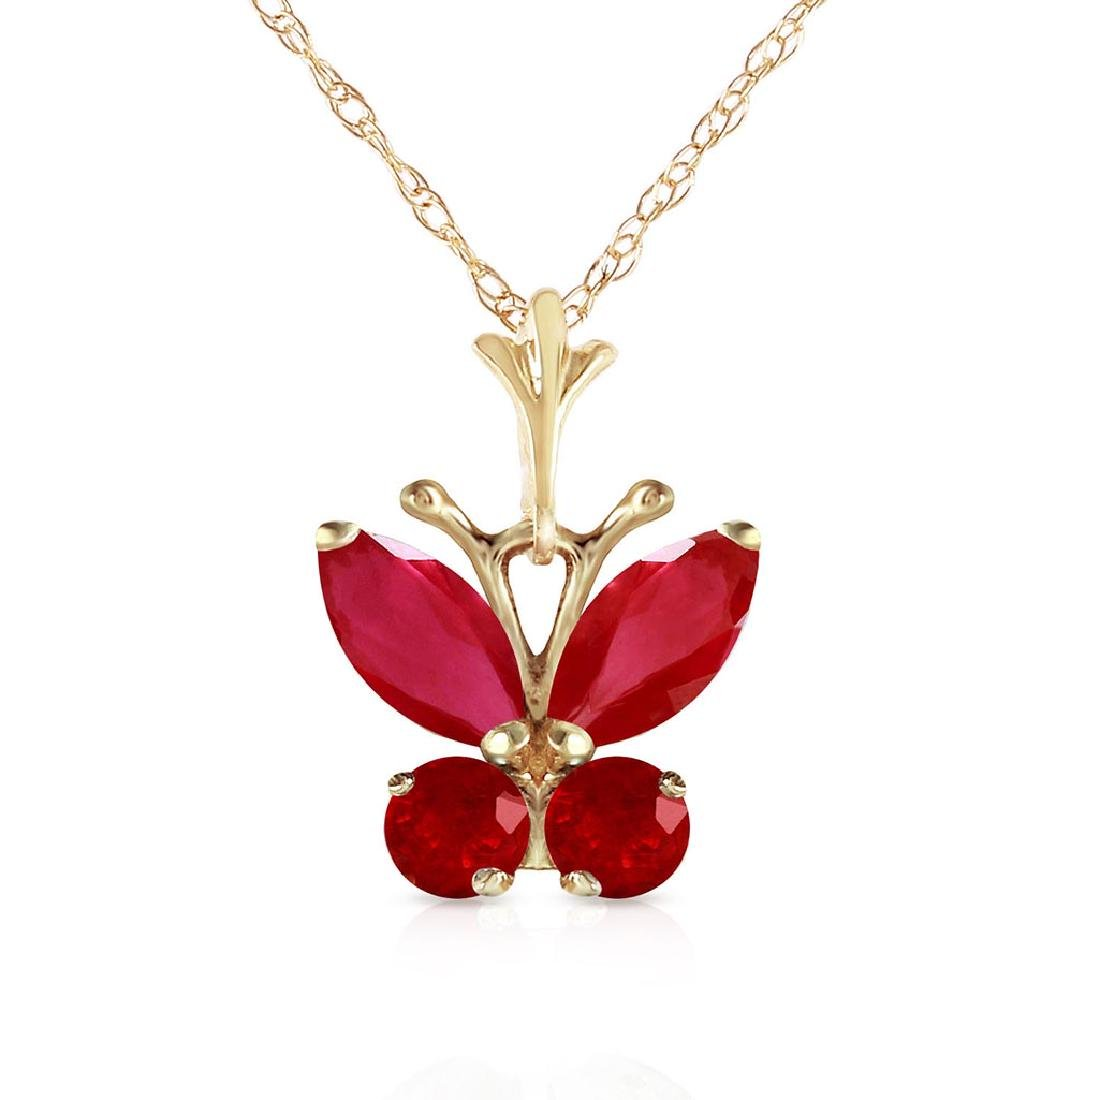 0.6 Carat 14K Solid Gold Butterfly Necklace Natural Rub